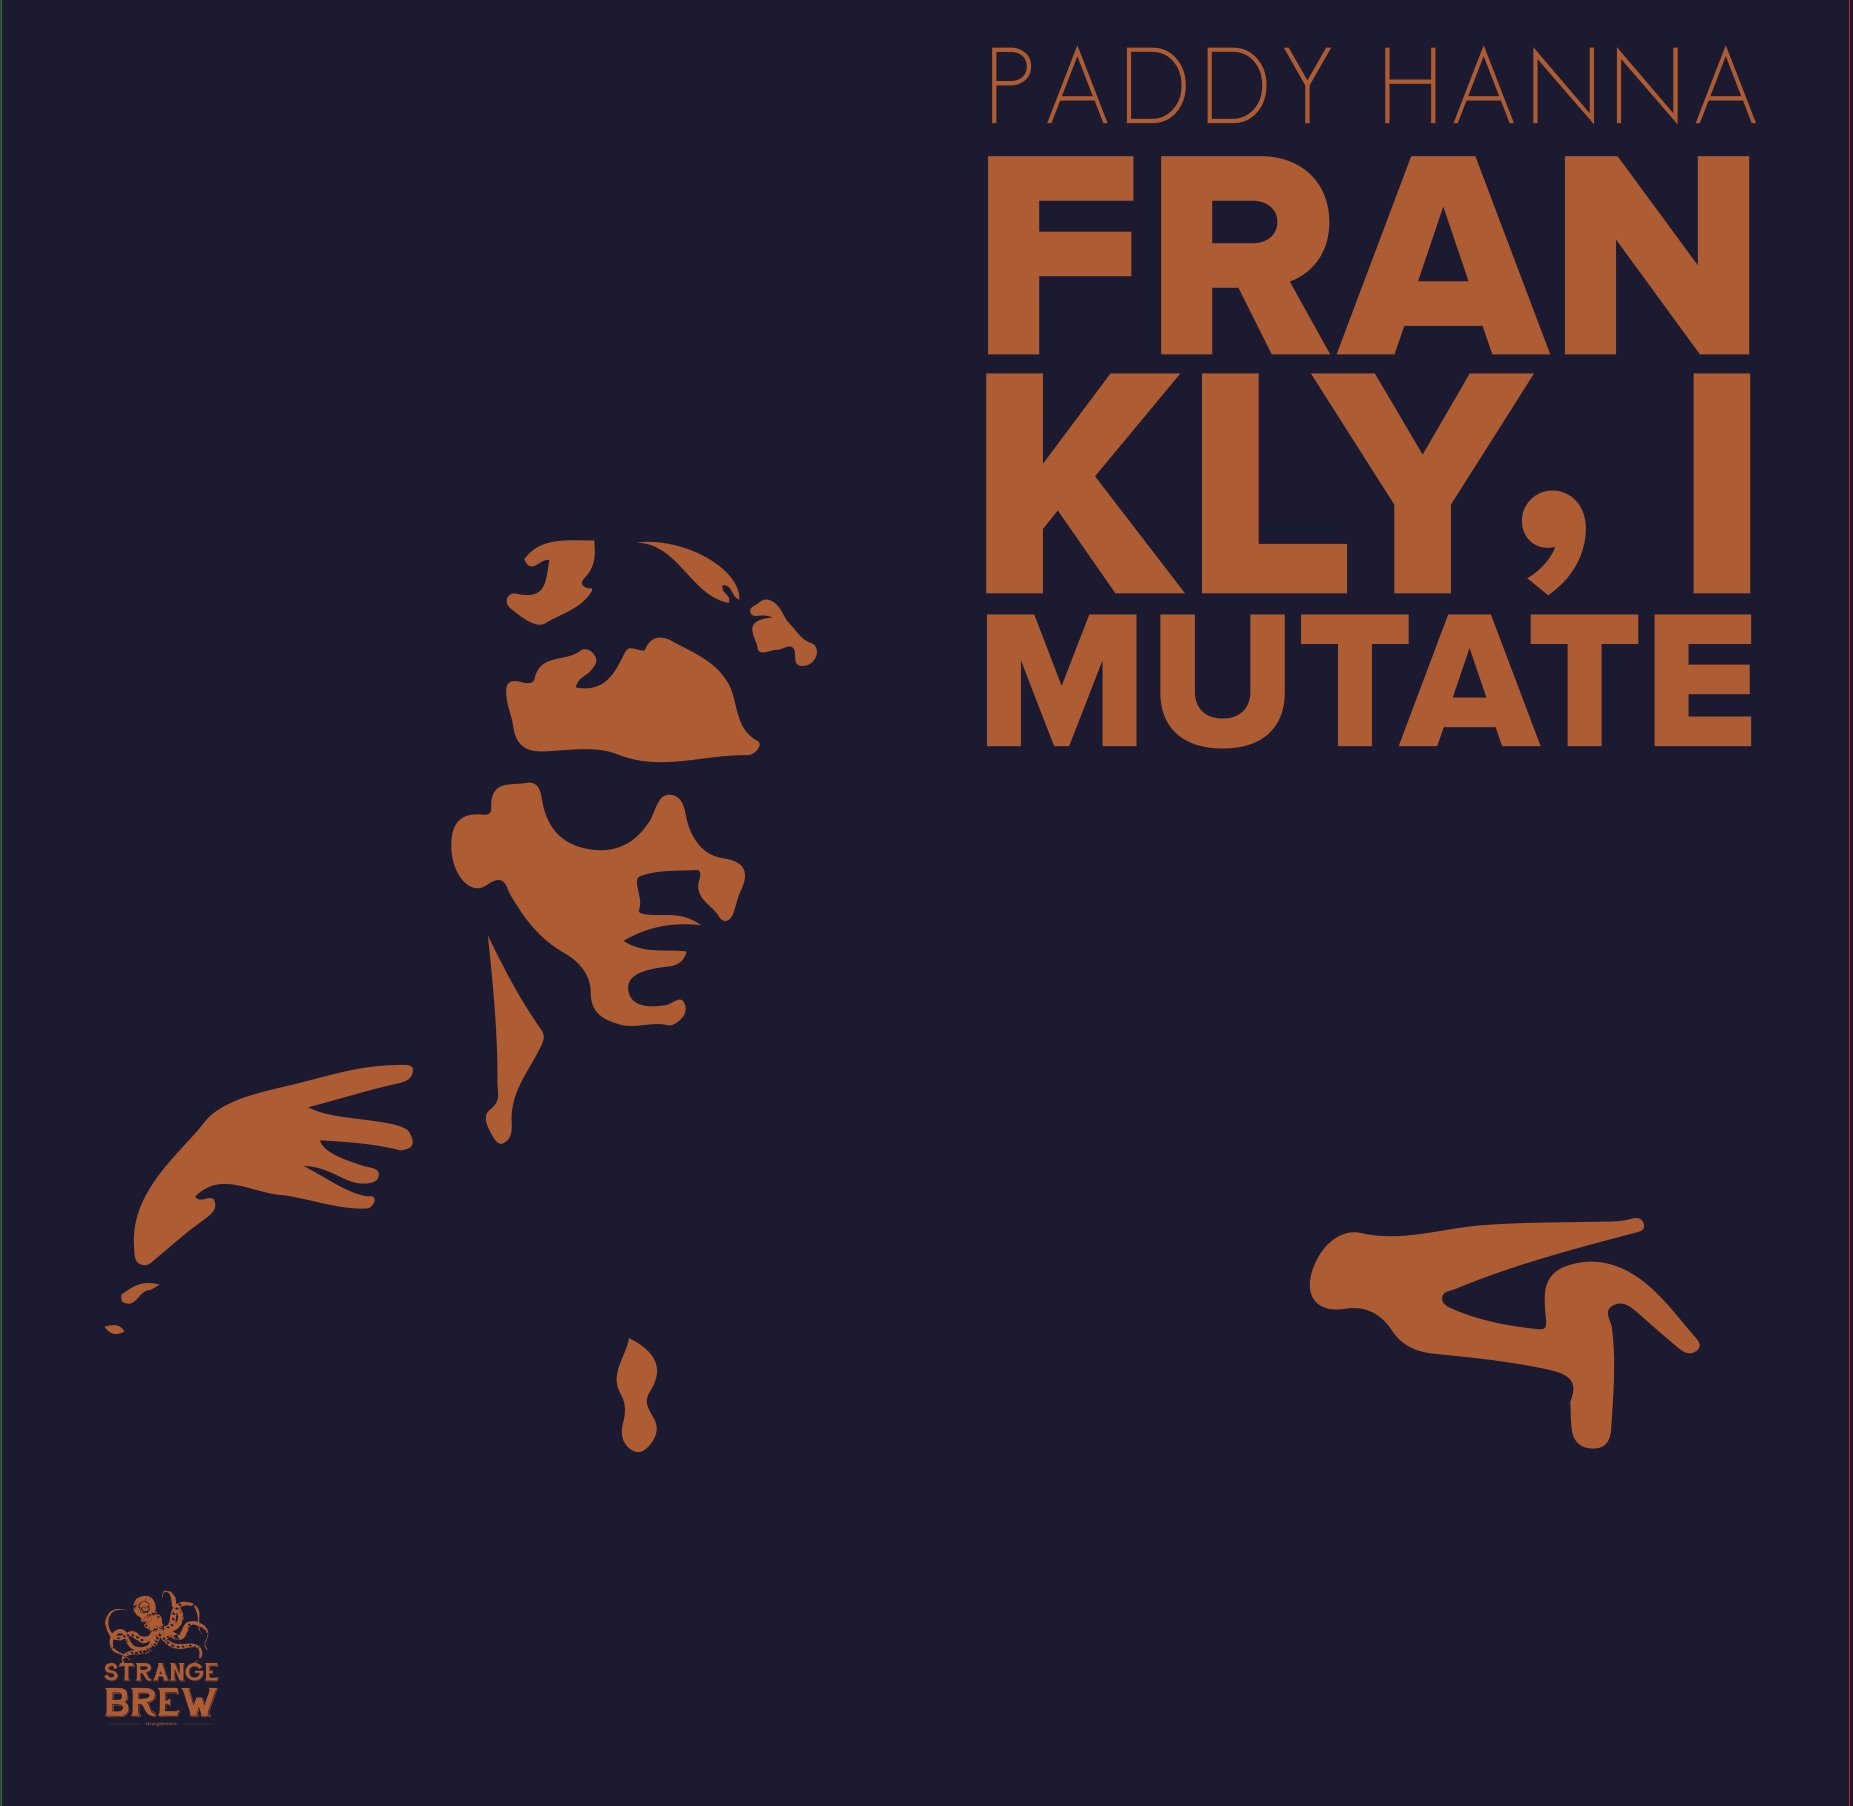 FRANKLY, I MUTATE by Paddy Hanna